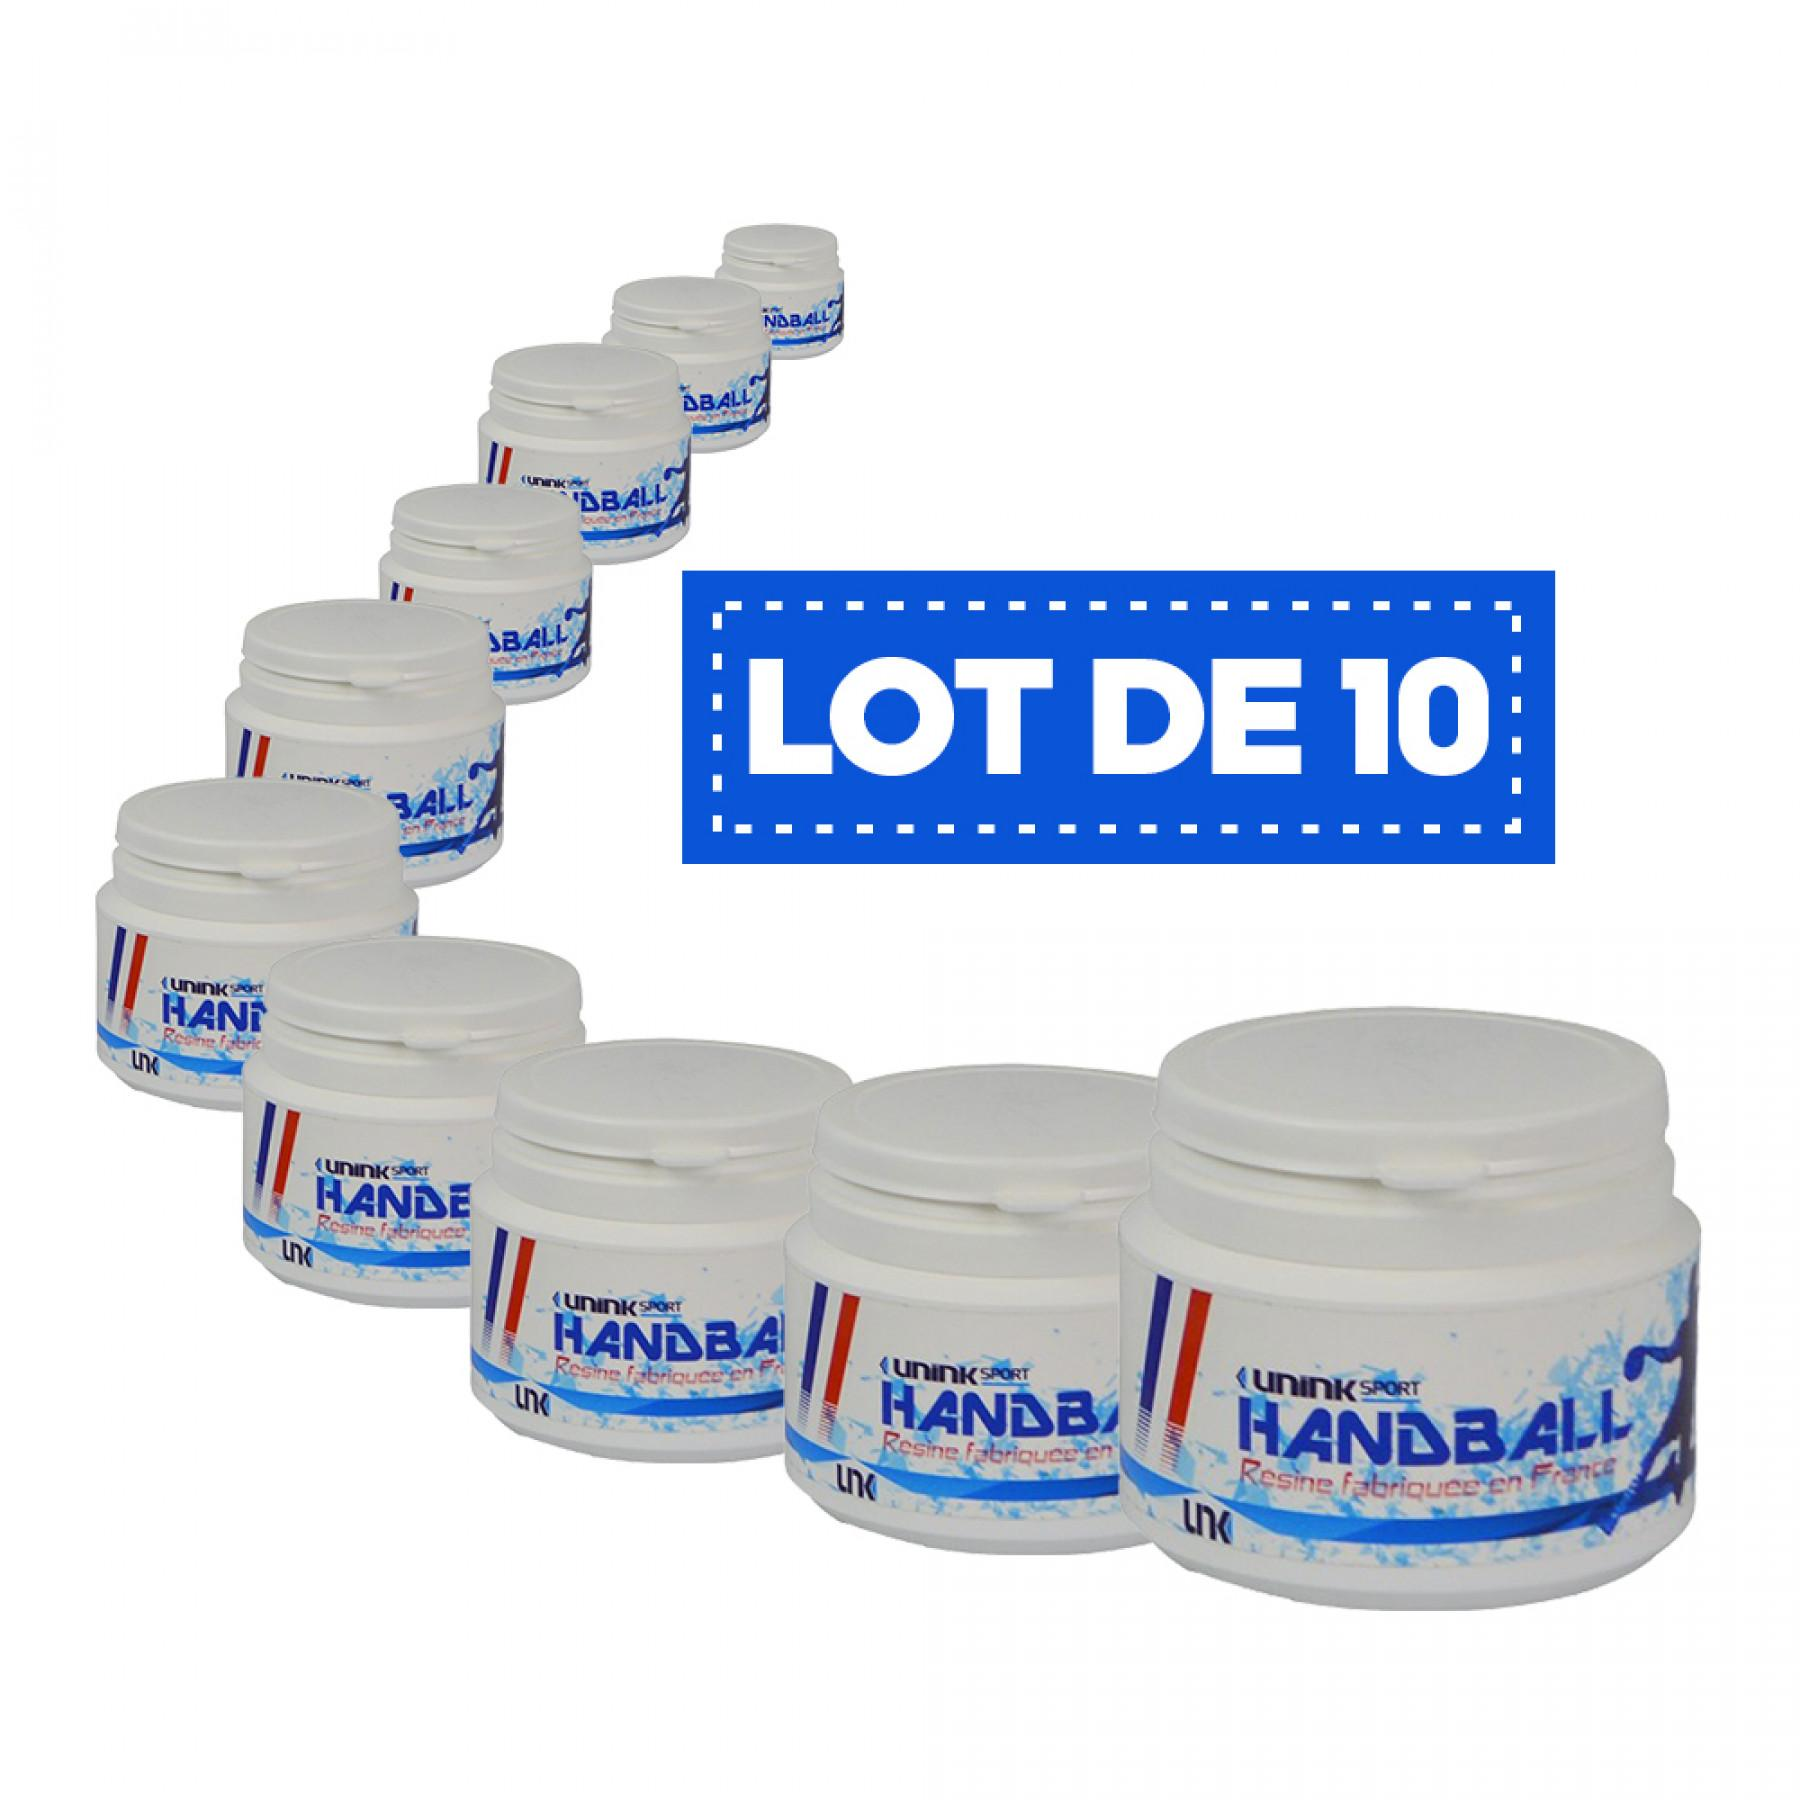 Lot de 10 Résines blanches haute performance Sporti France - 100 ml